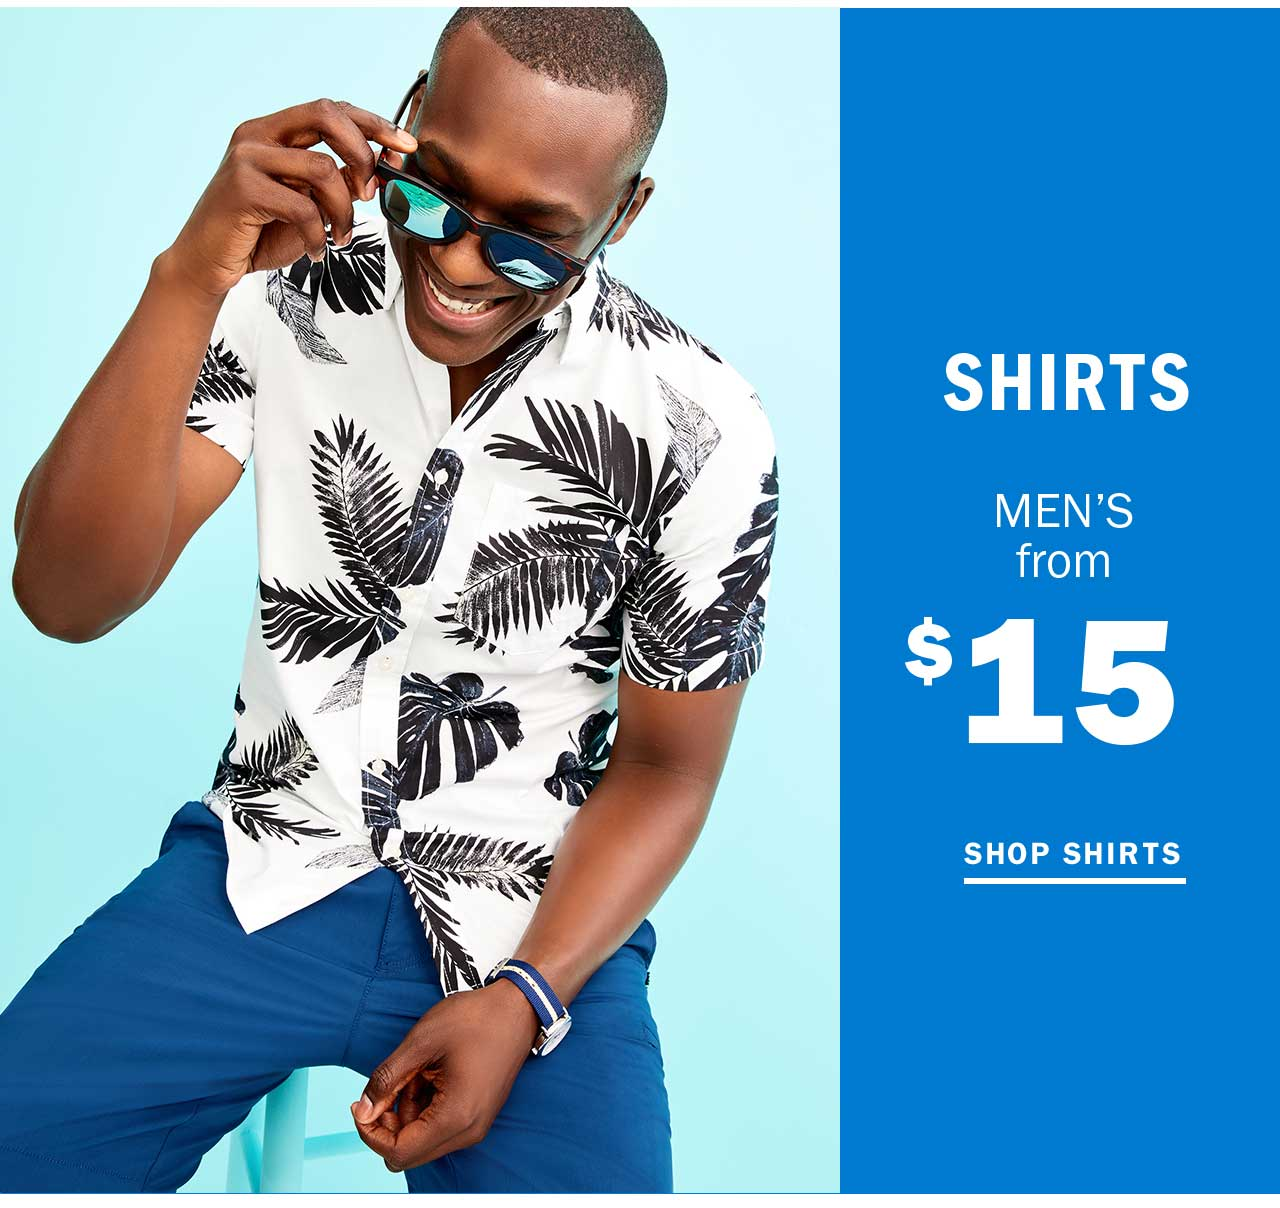 SHIRTS MEN'S from $15 | SHOP SHIRTS